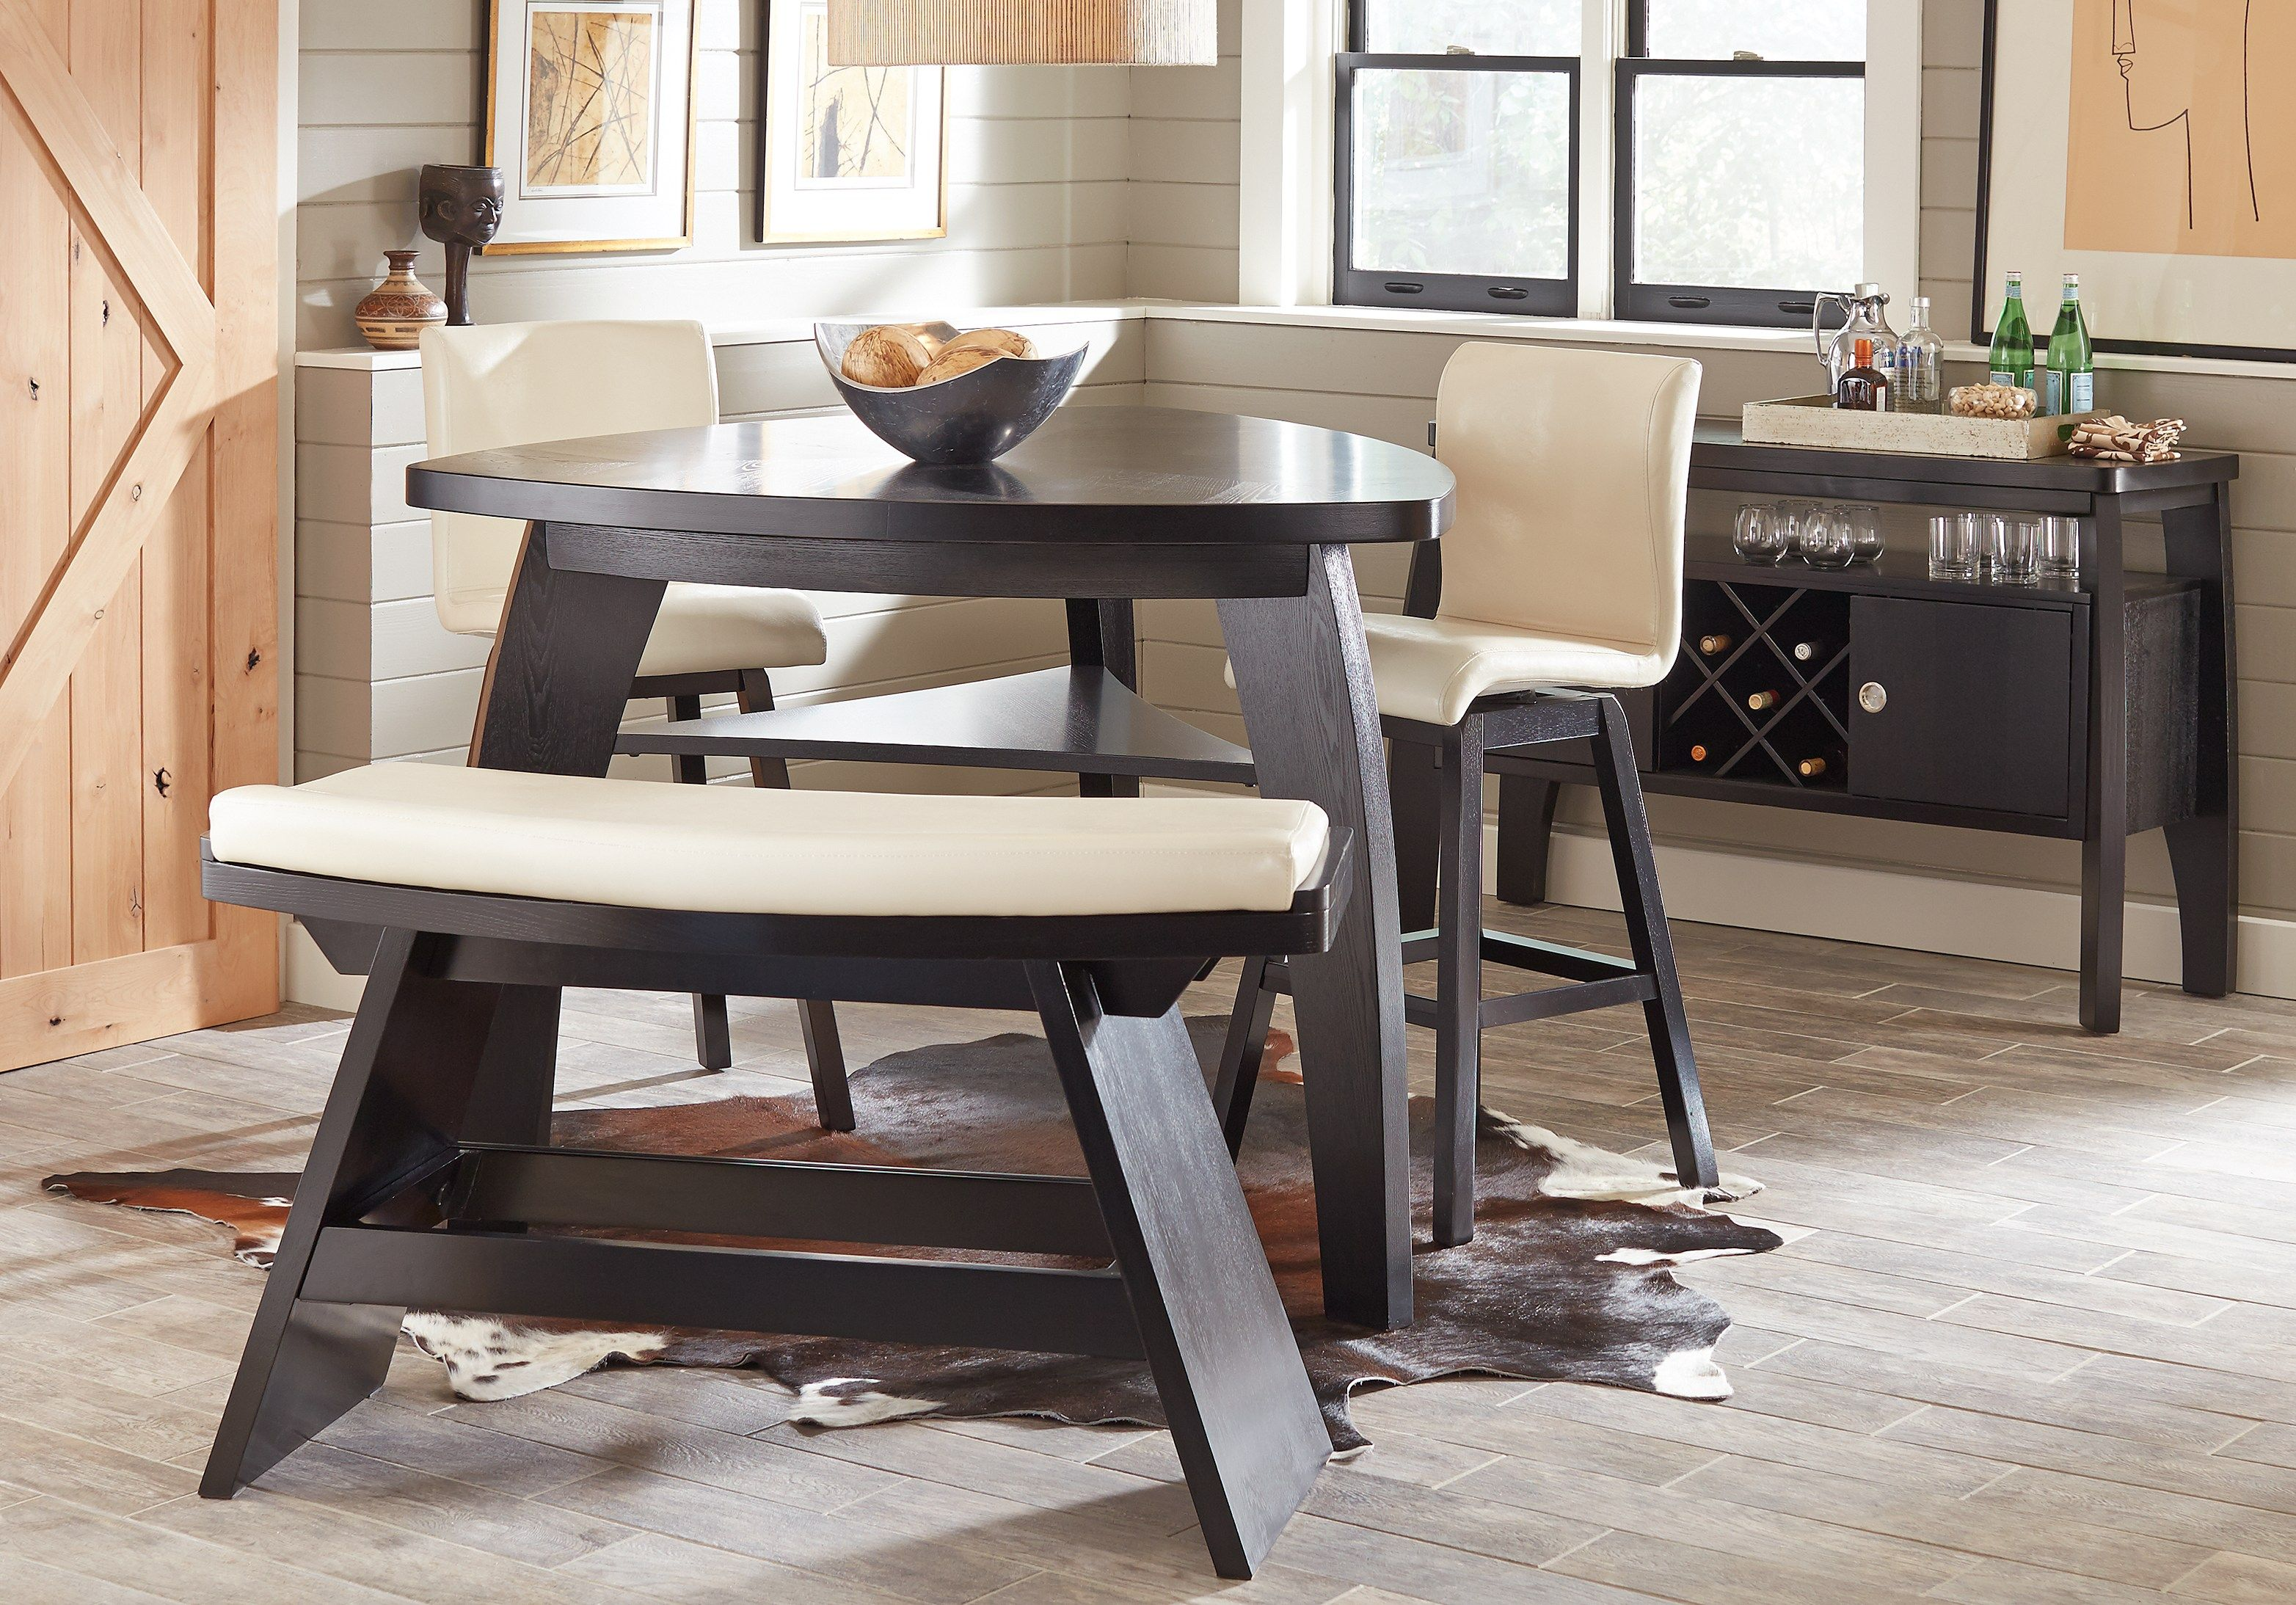 Noah Chocolate 4 Pc Bar Height Dining Room with Vanilla Barstools | Casual dining rooms, Dining ...